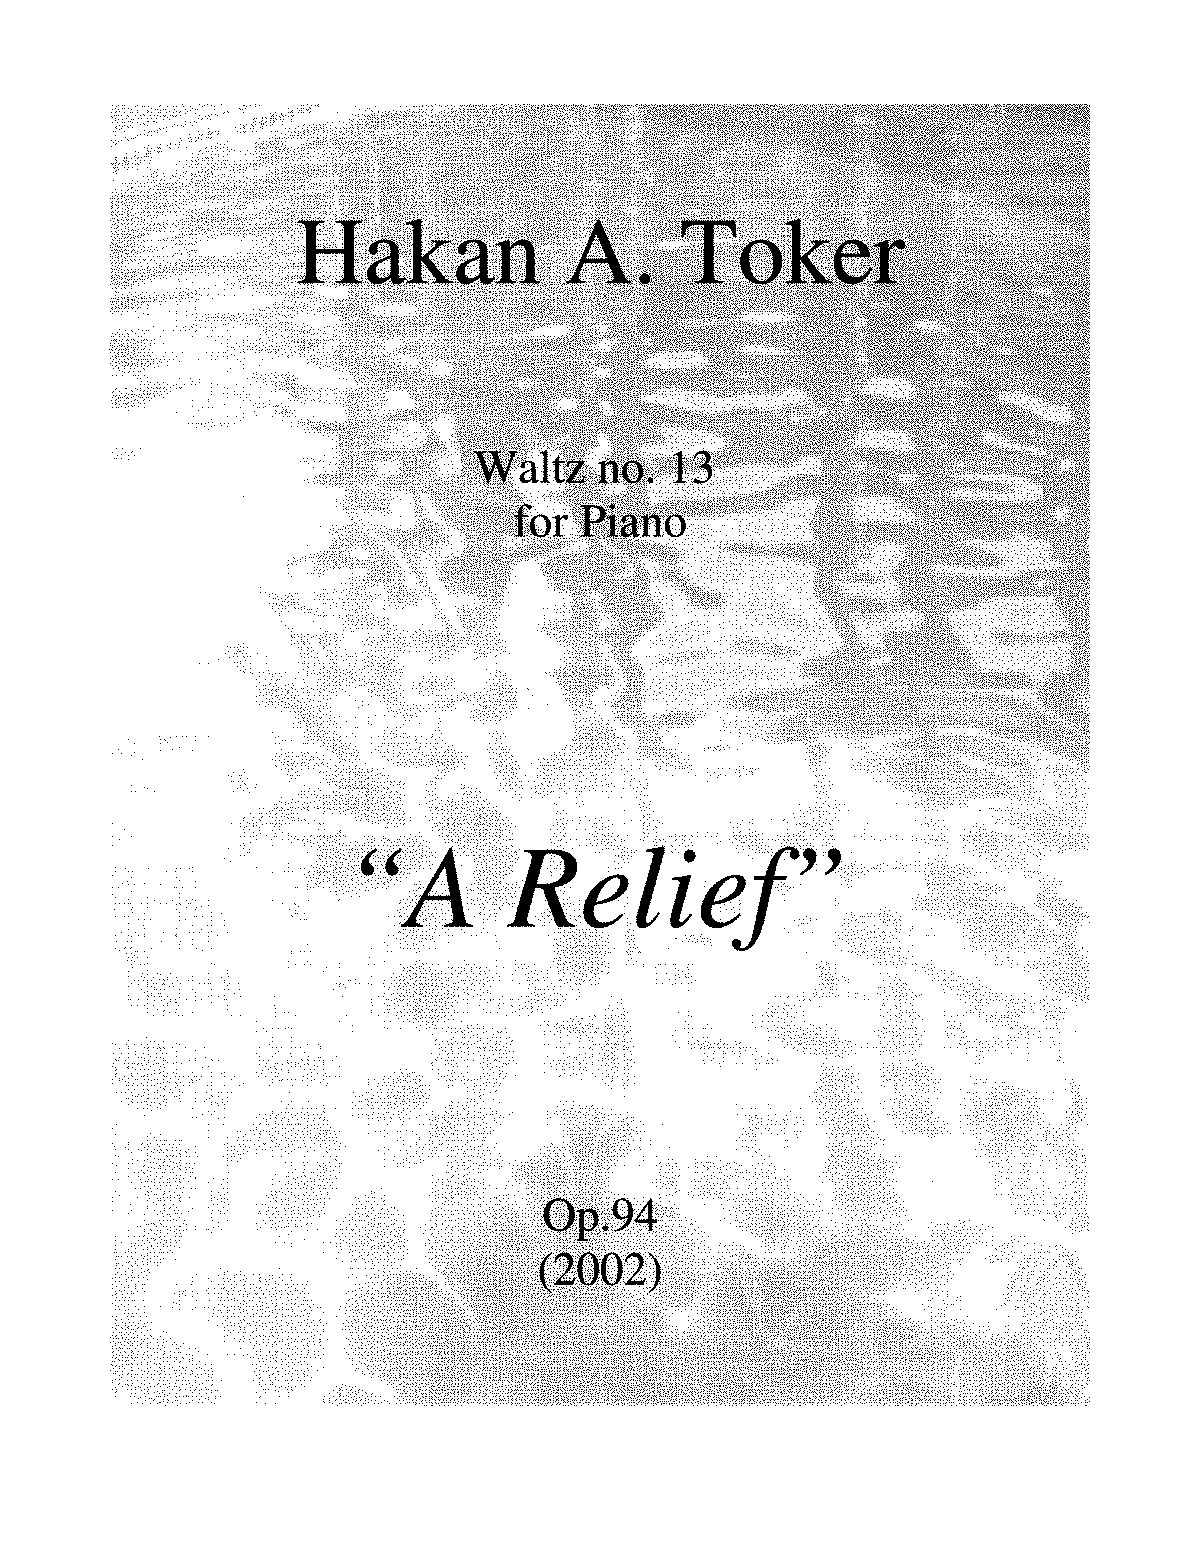 PMLP579775-A Relief - Waltz no. 13 for piano by Hakan A. Toker.pdf